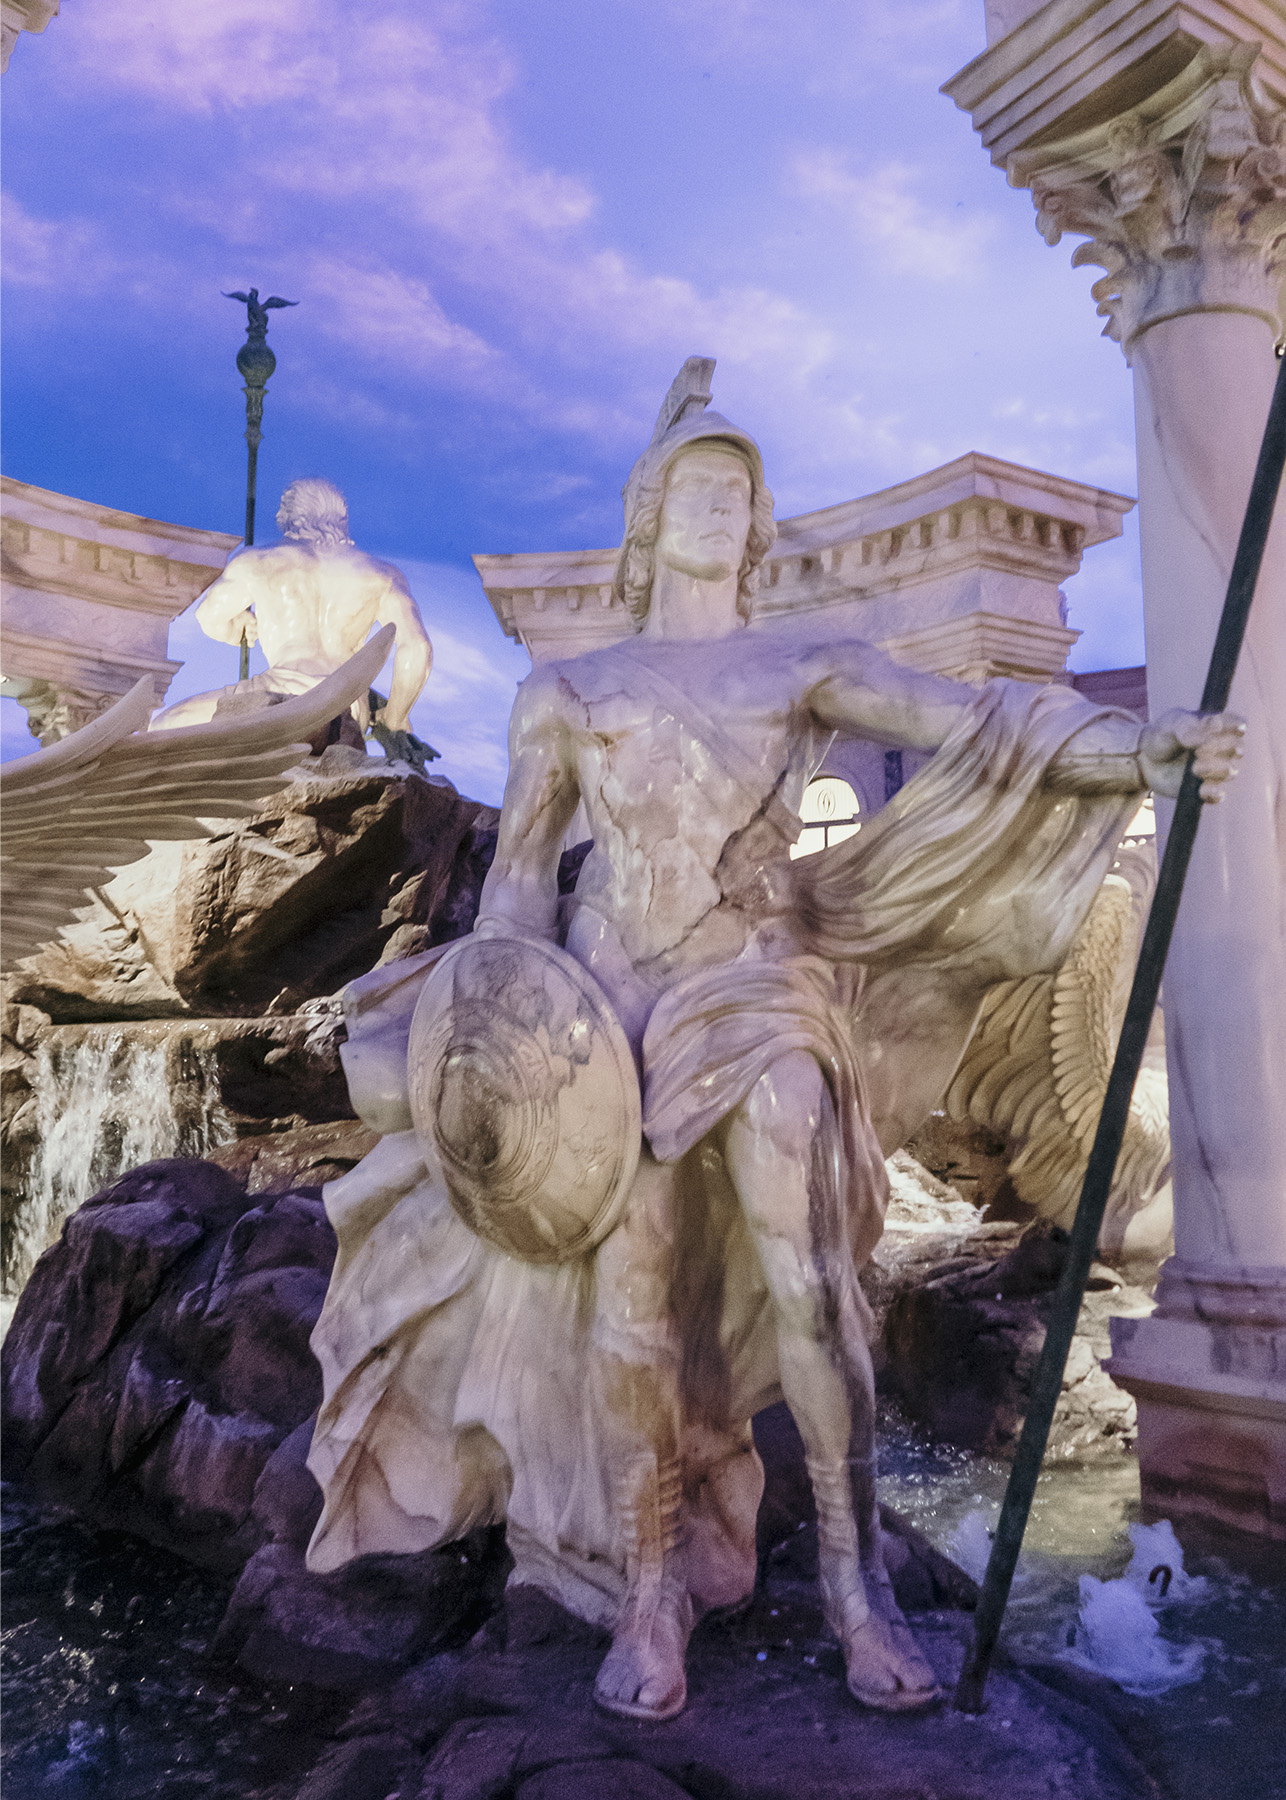 Roman statute of a warrior at the Caesar's Palace Hotel in Las Vegas